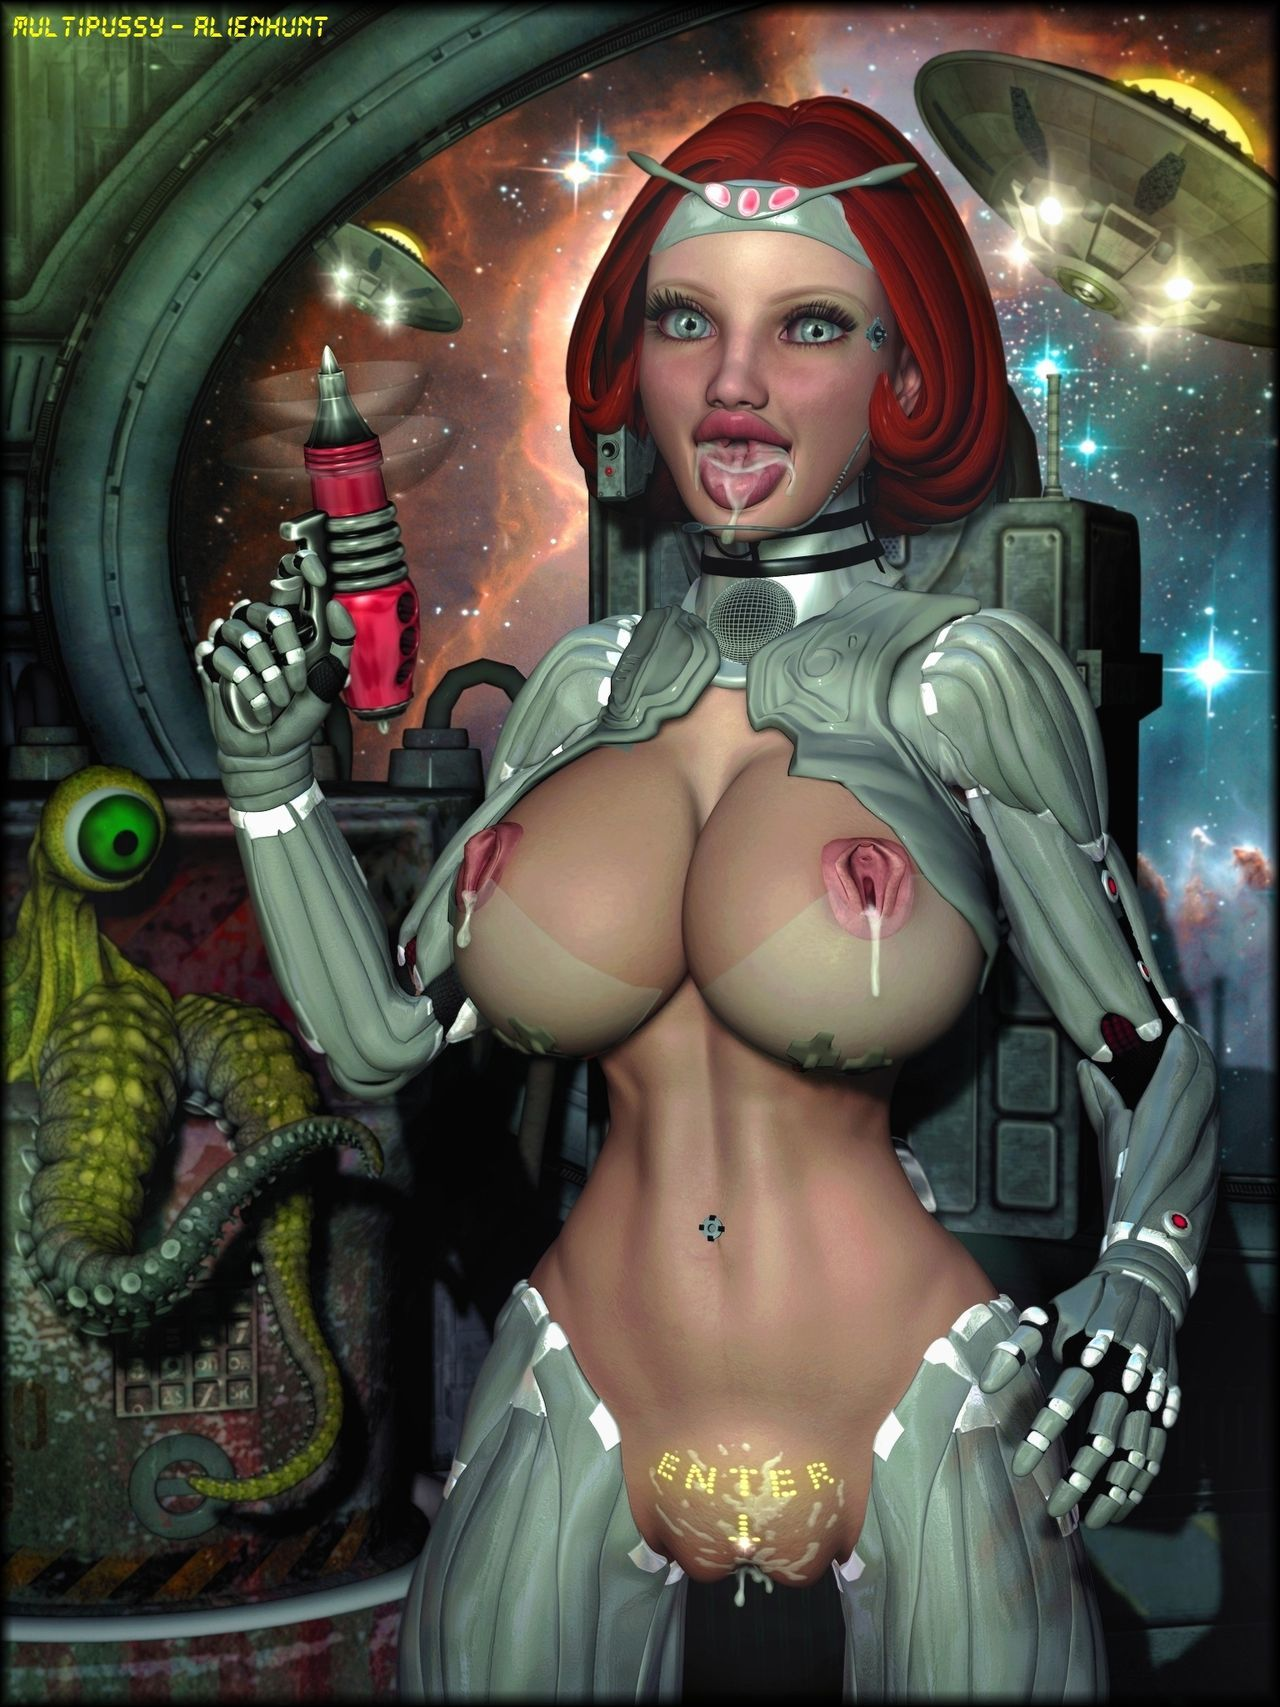 Demongirls & Scifi 3D galilee - faithfulness 4